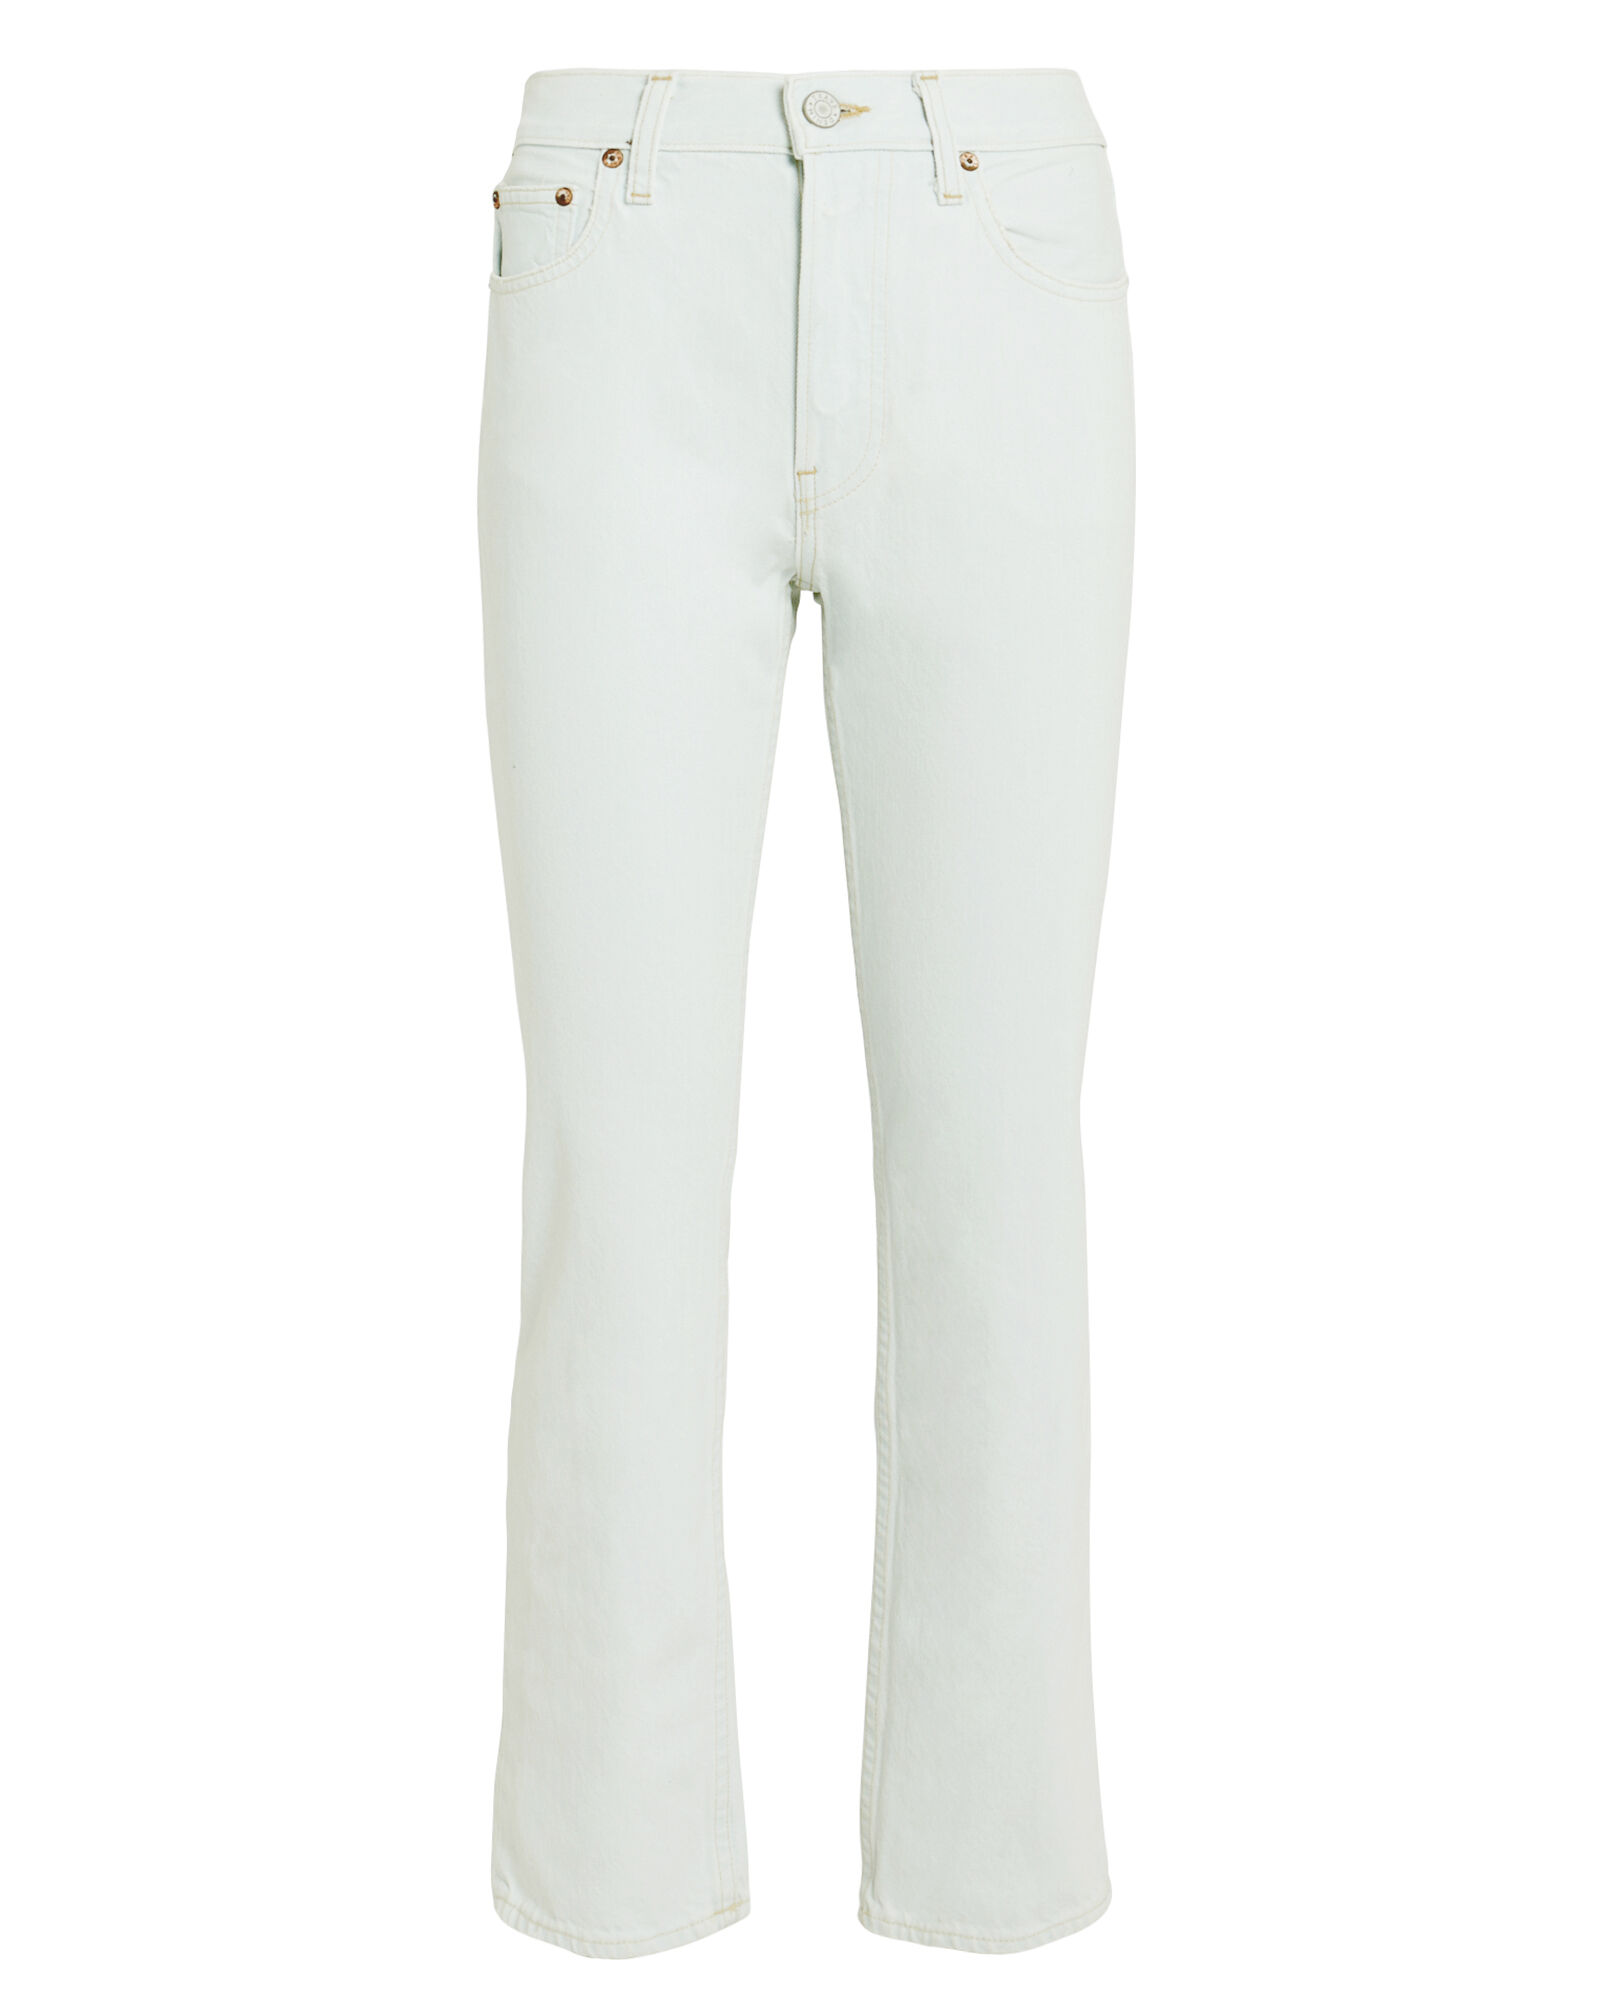 Constance Cropped Straight Leg Jeans, LIGHT WASH DENIM, hi-res